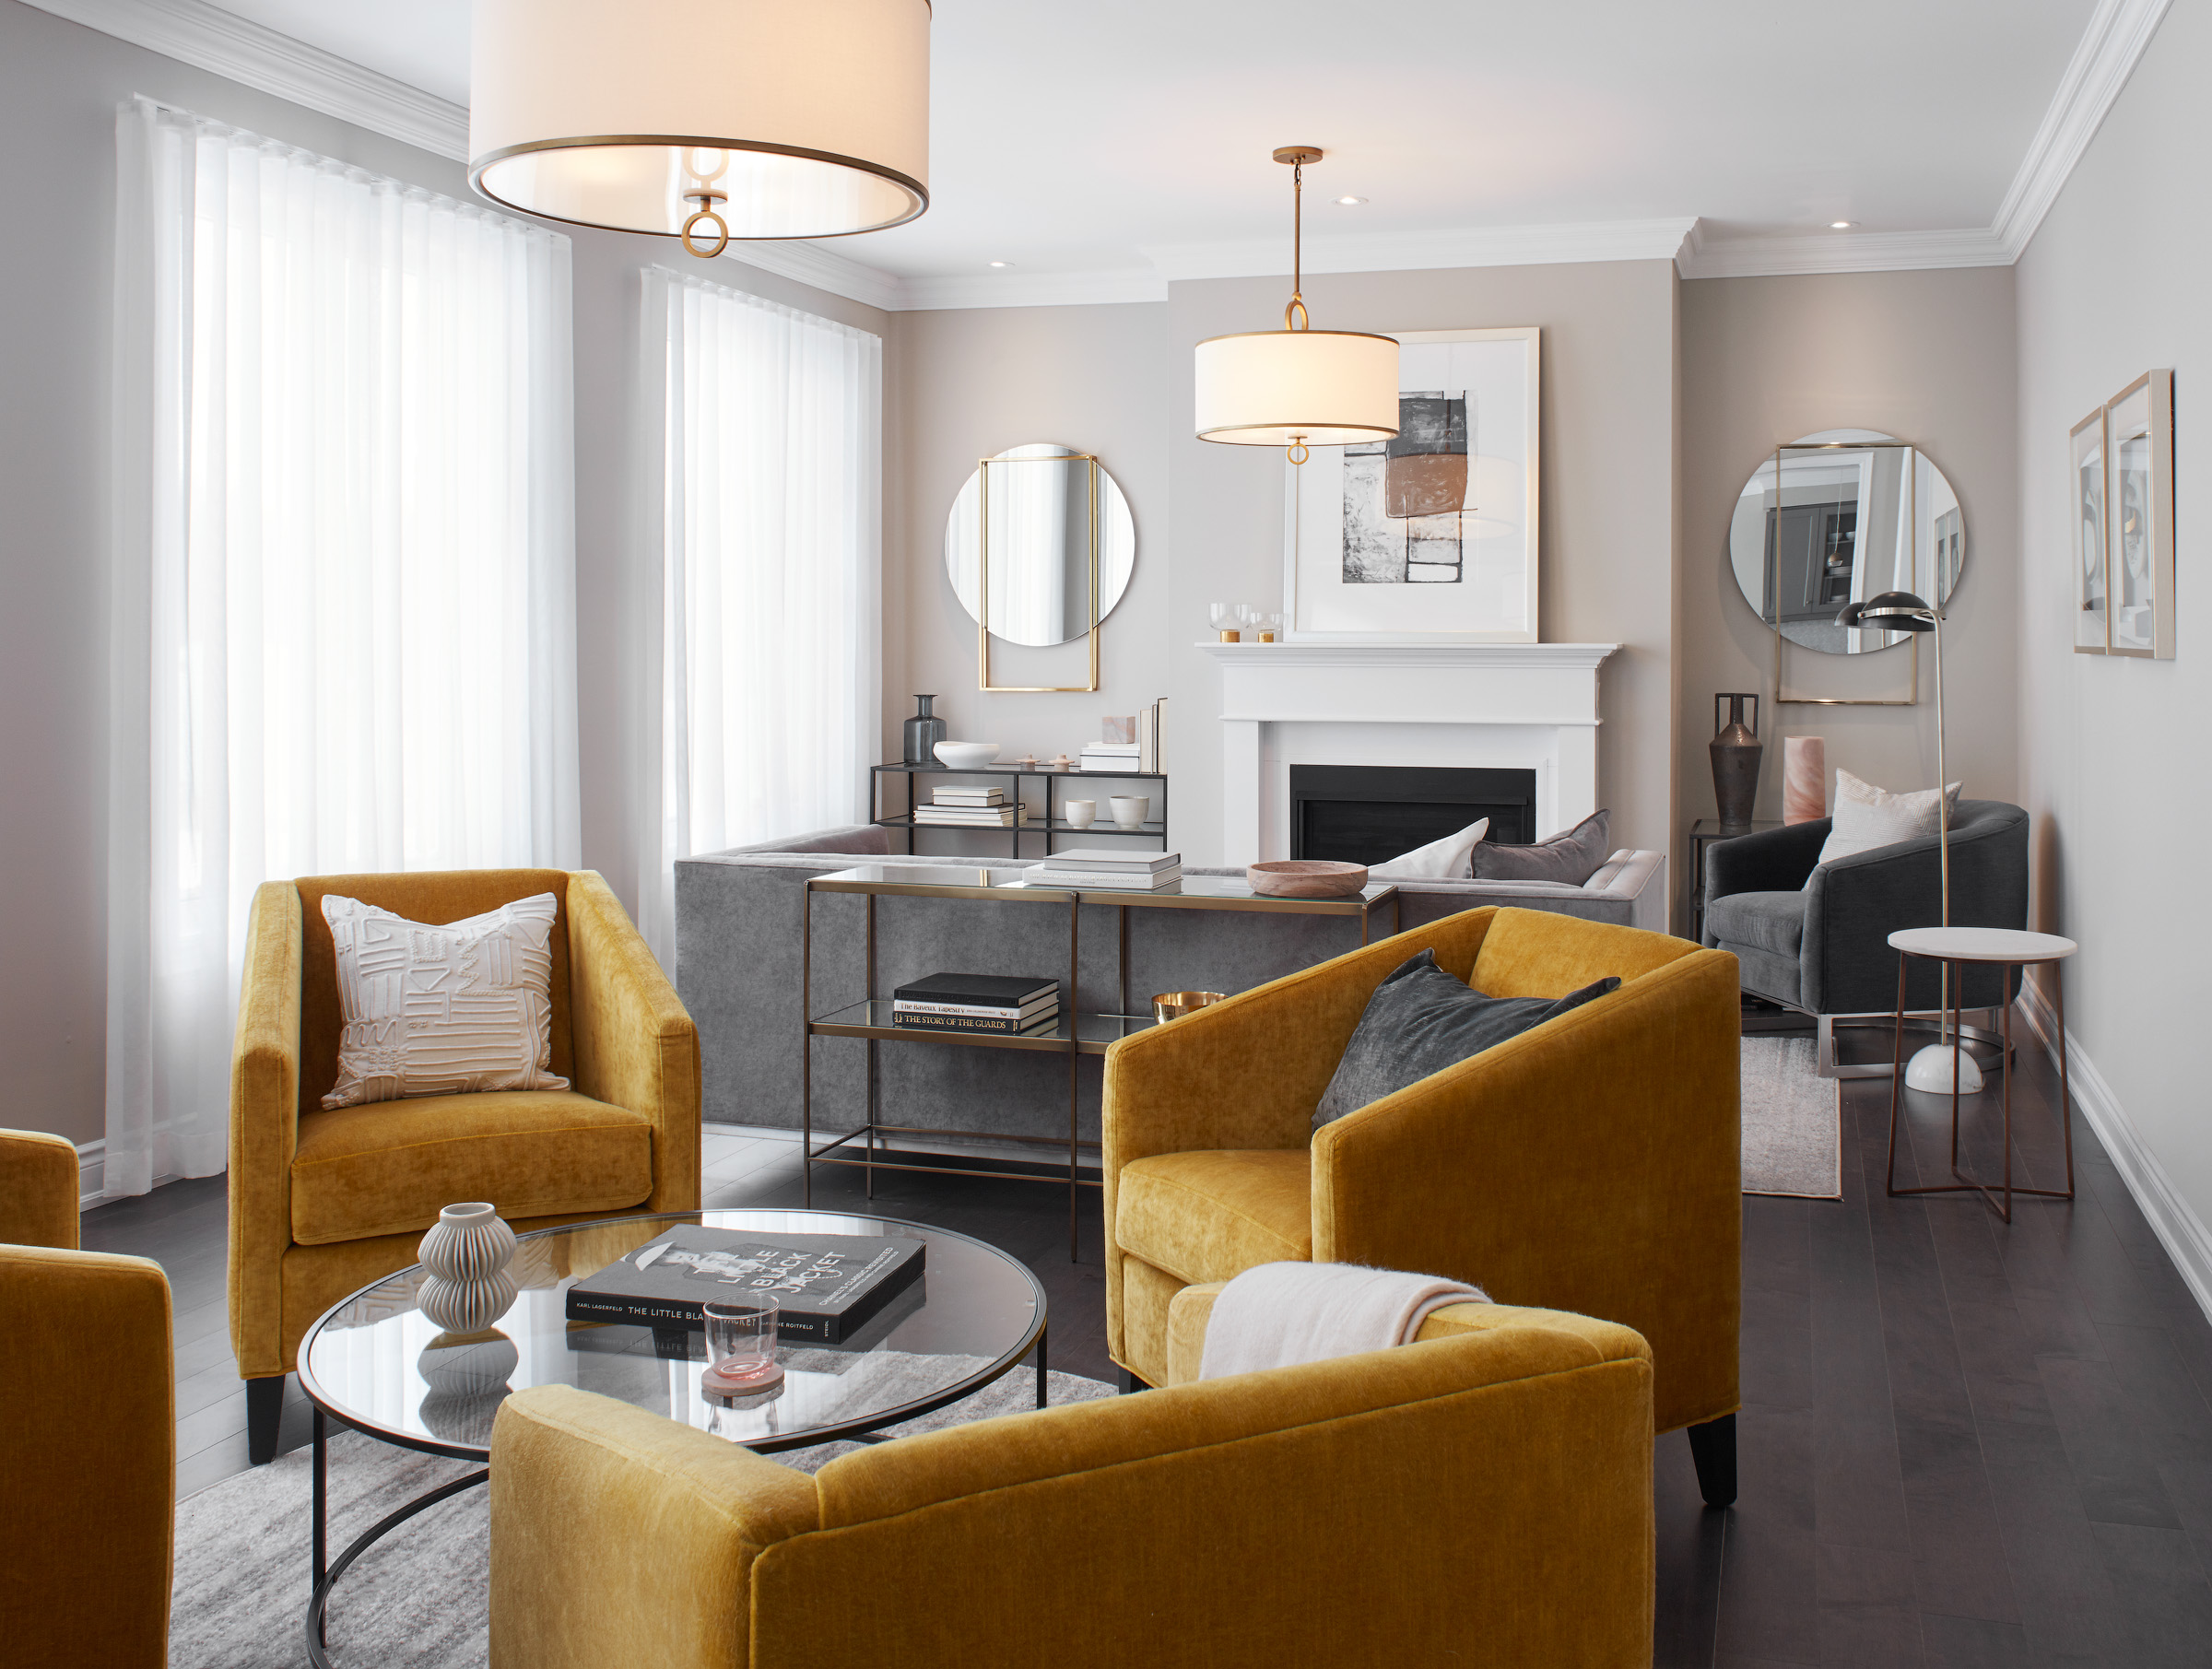 Manor Estate living room with bright yellow chairs and metal accent tables